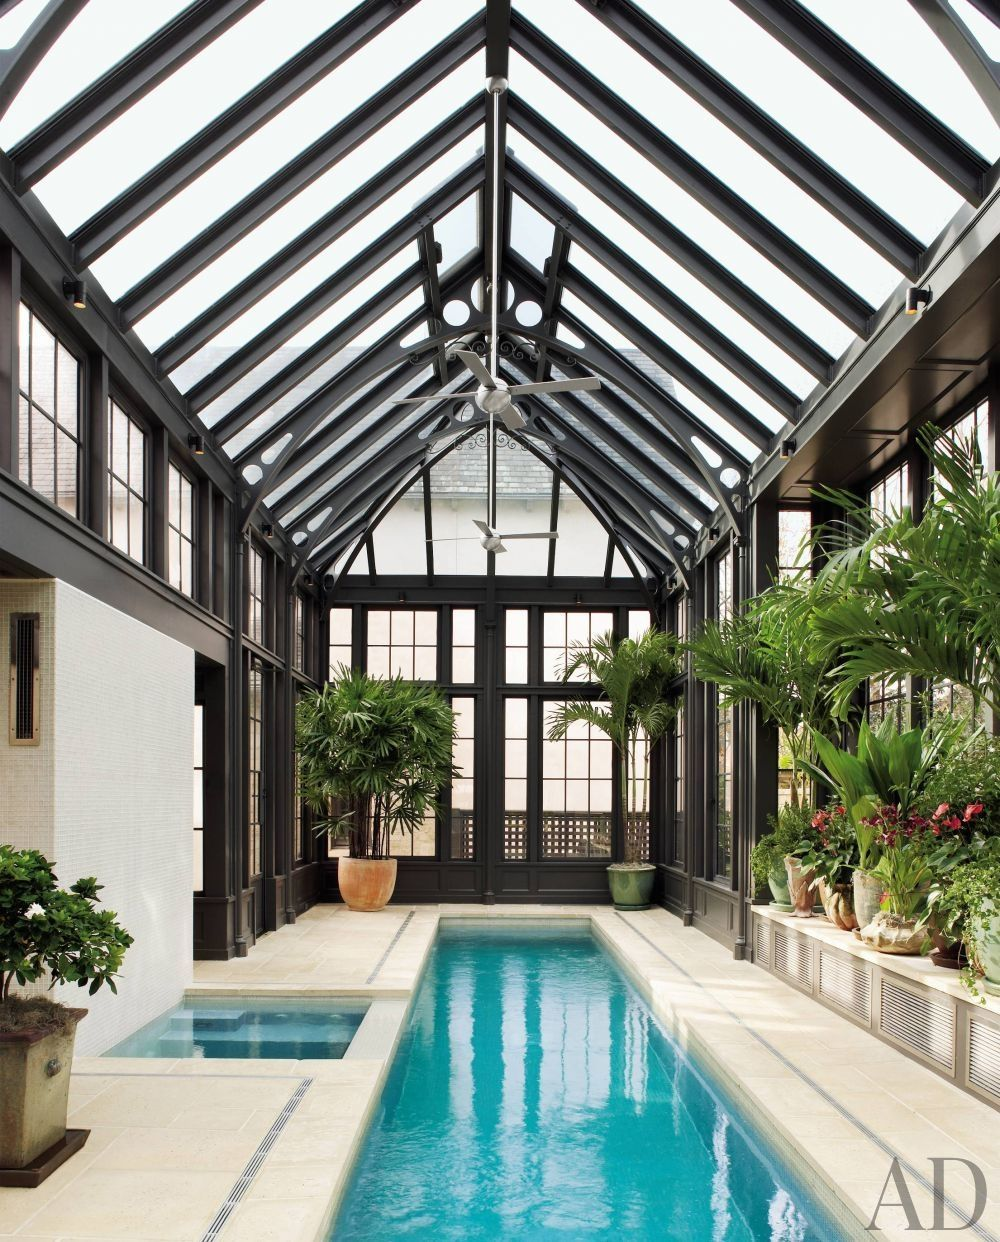 Conservatory Pool House With 19th Century Nuances Lap Pool And Spa For Year Round Use Small Indoor Pool Indoor Pool Design Indoor Swimming Pool Design